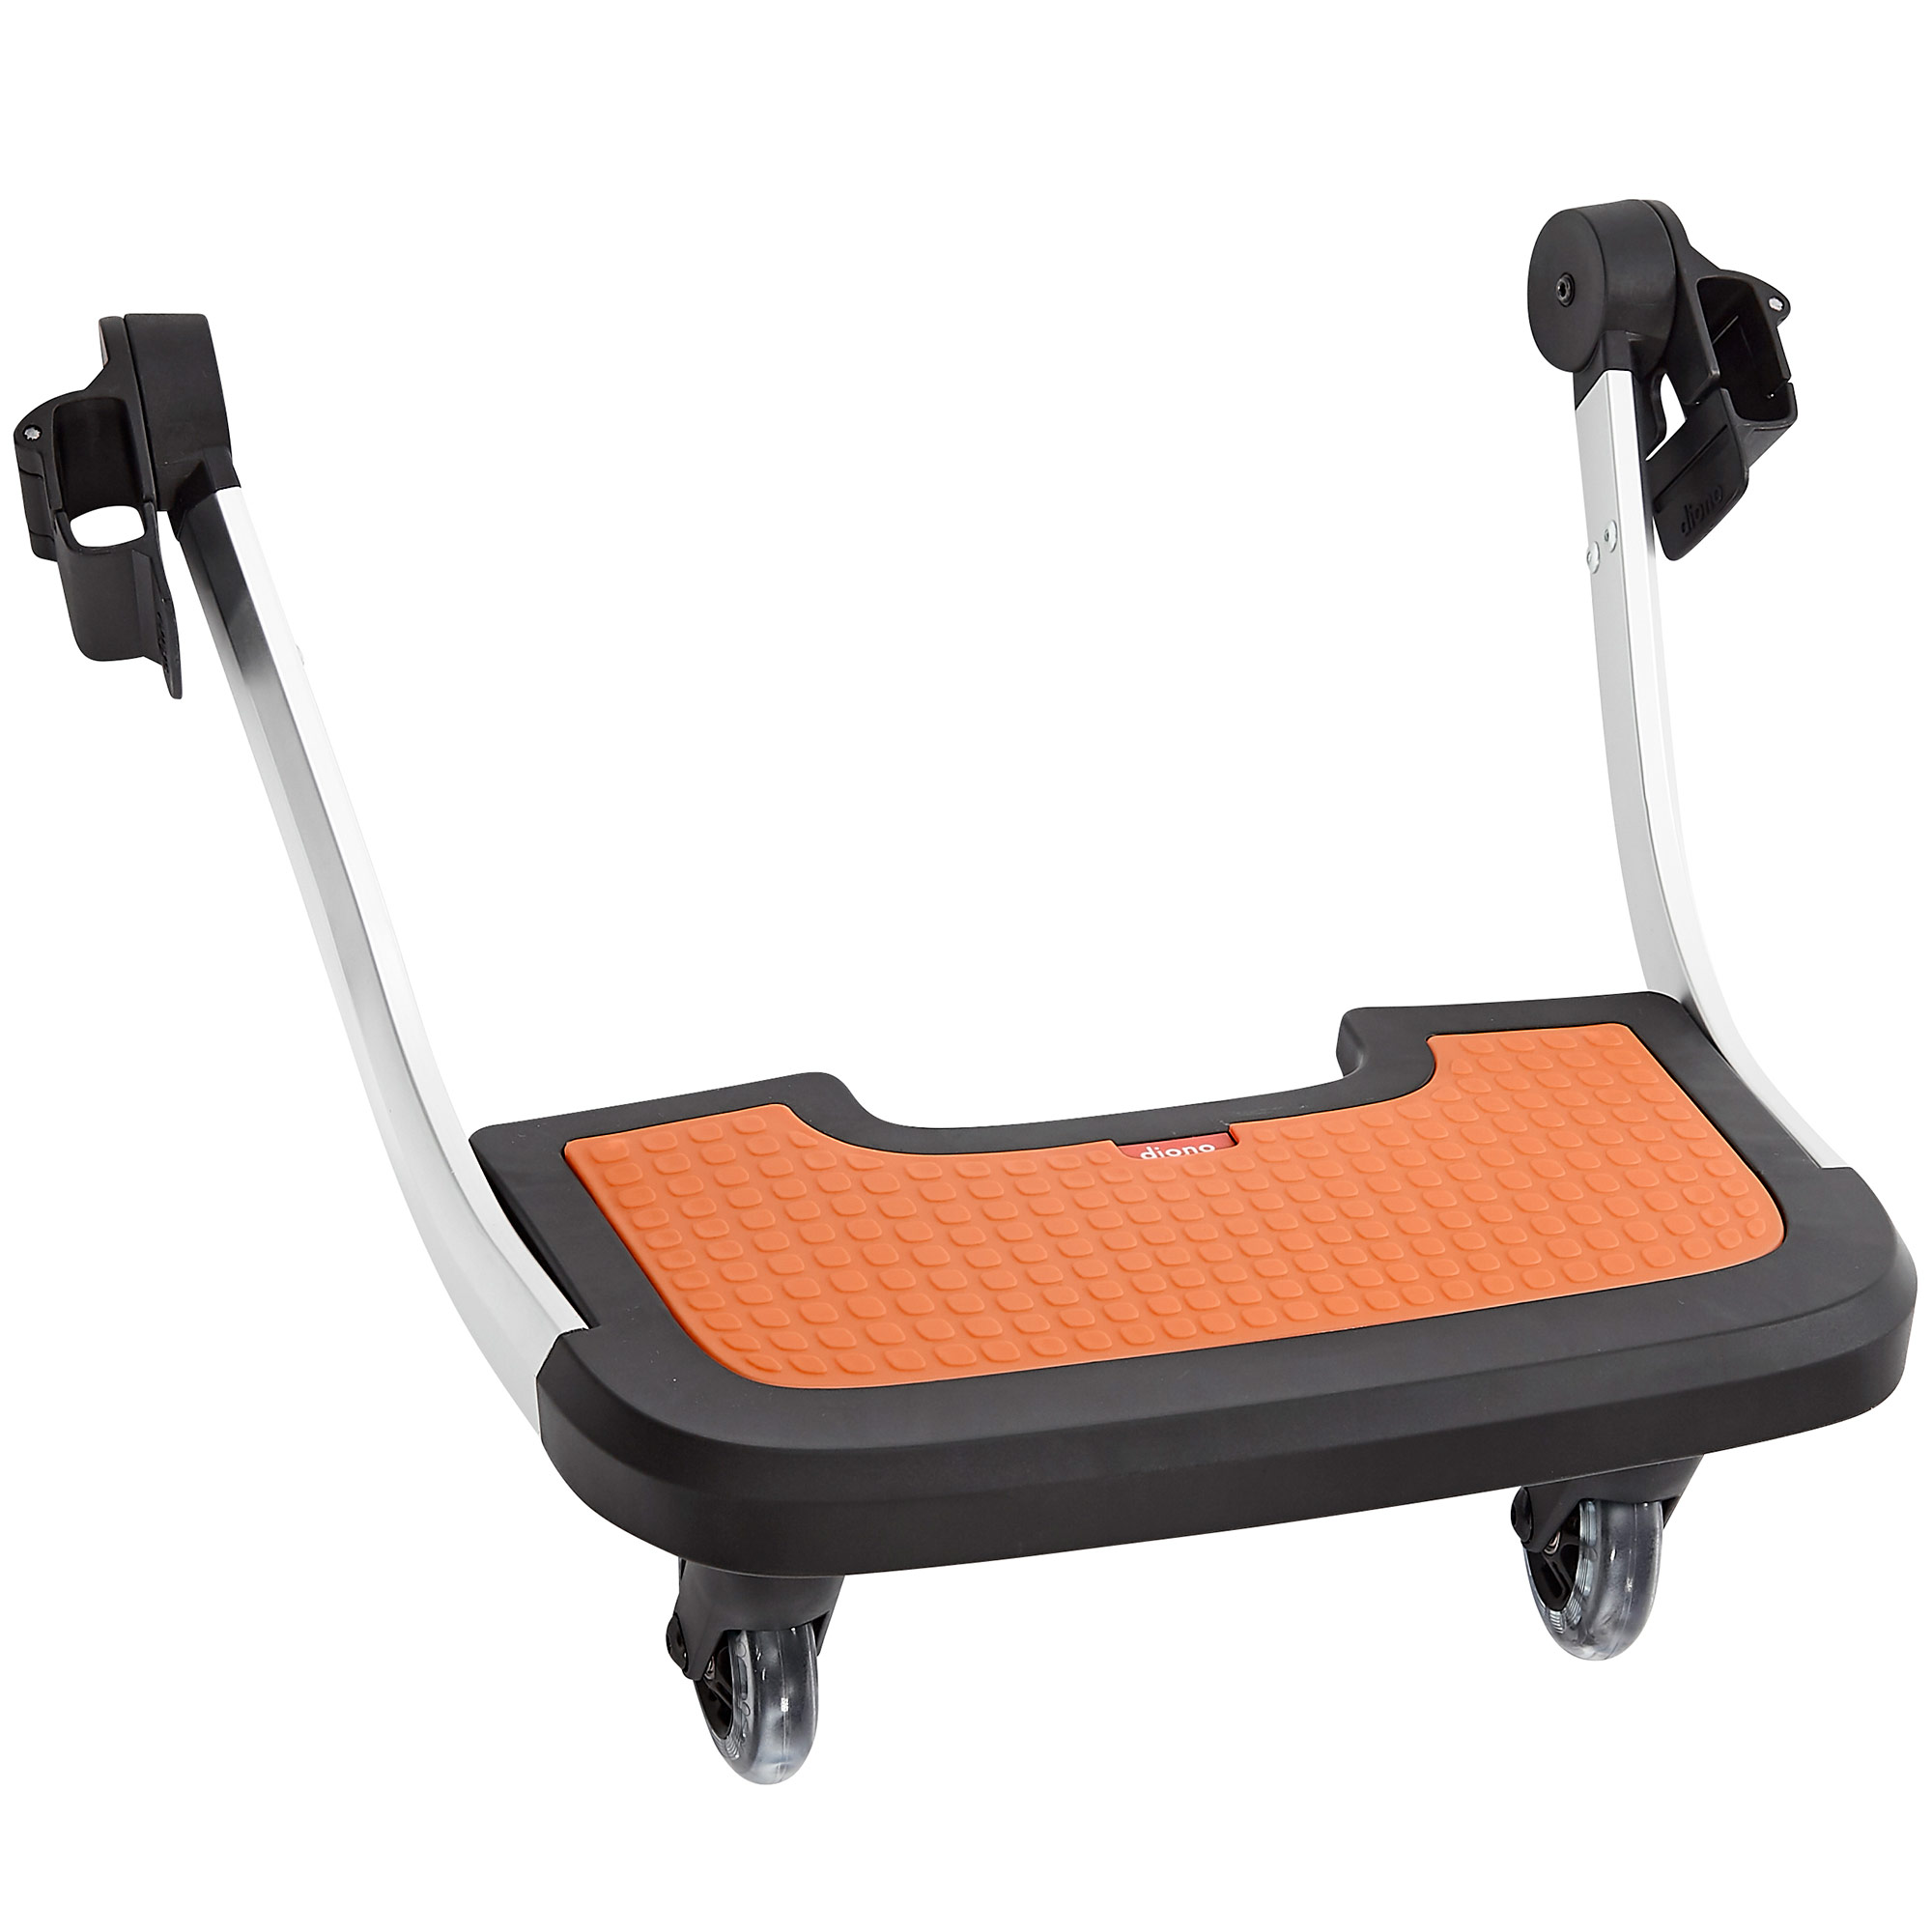 Extra Toddler Ride-On Diono Quantum Hop /& Roll Buggy Board